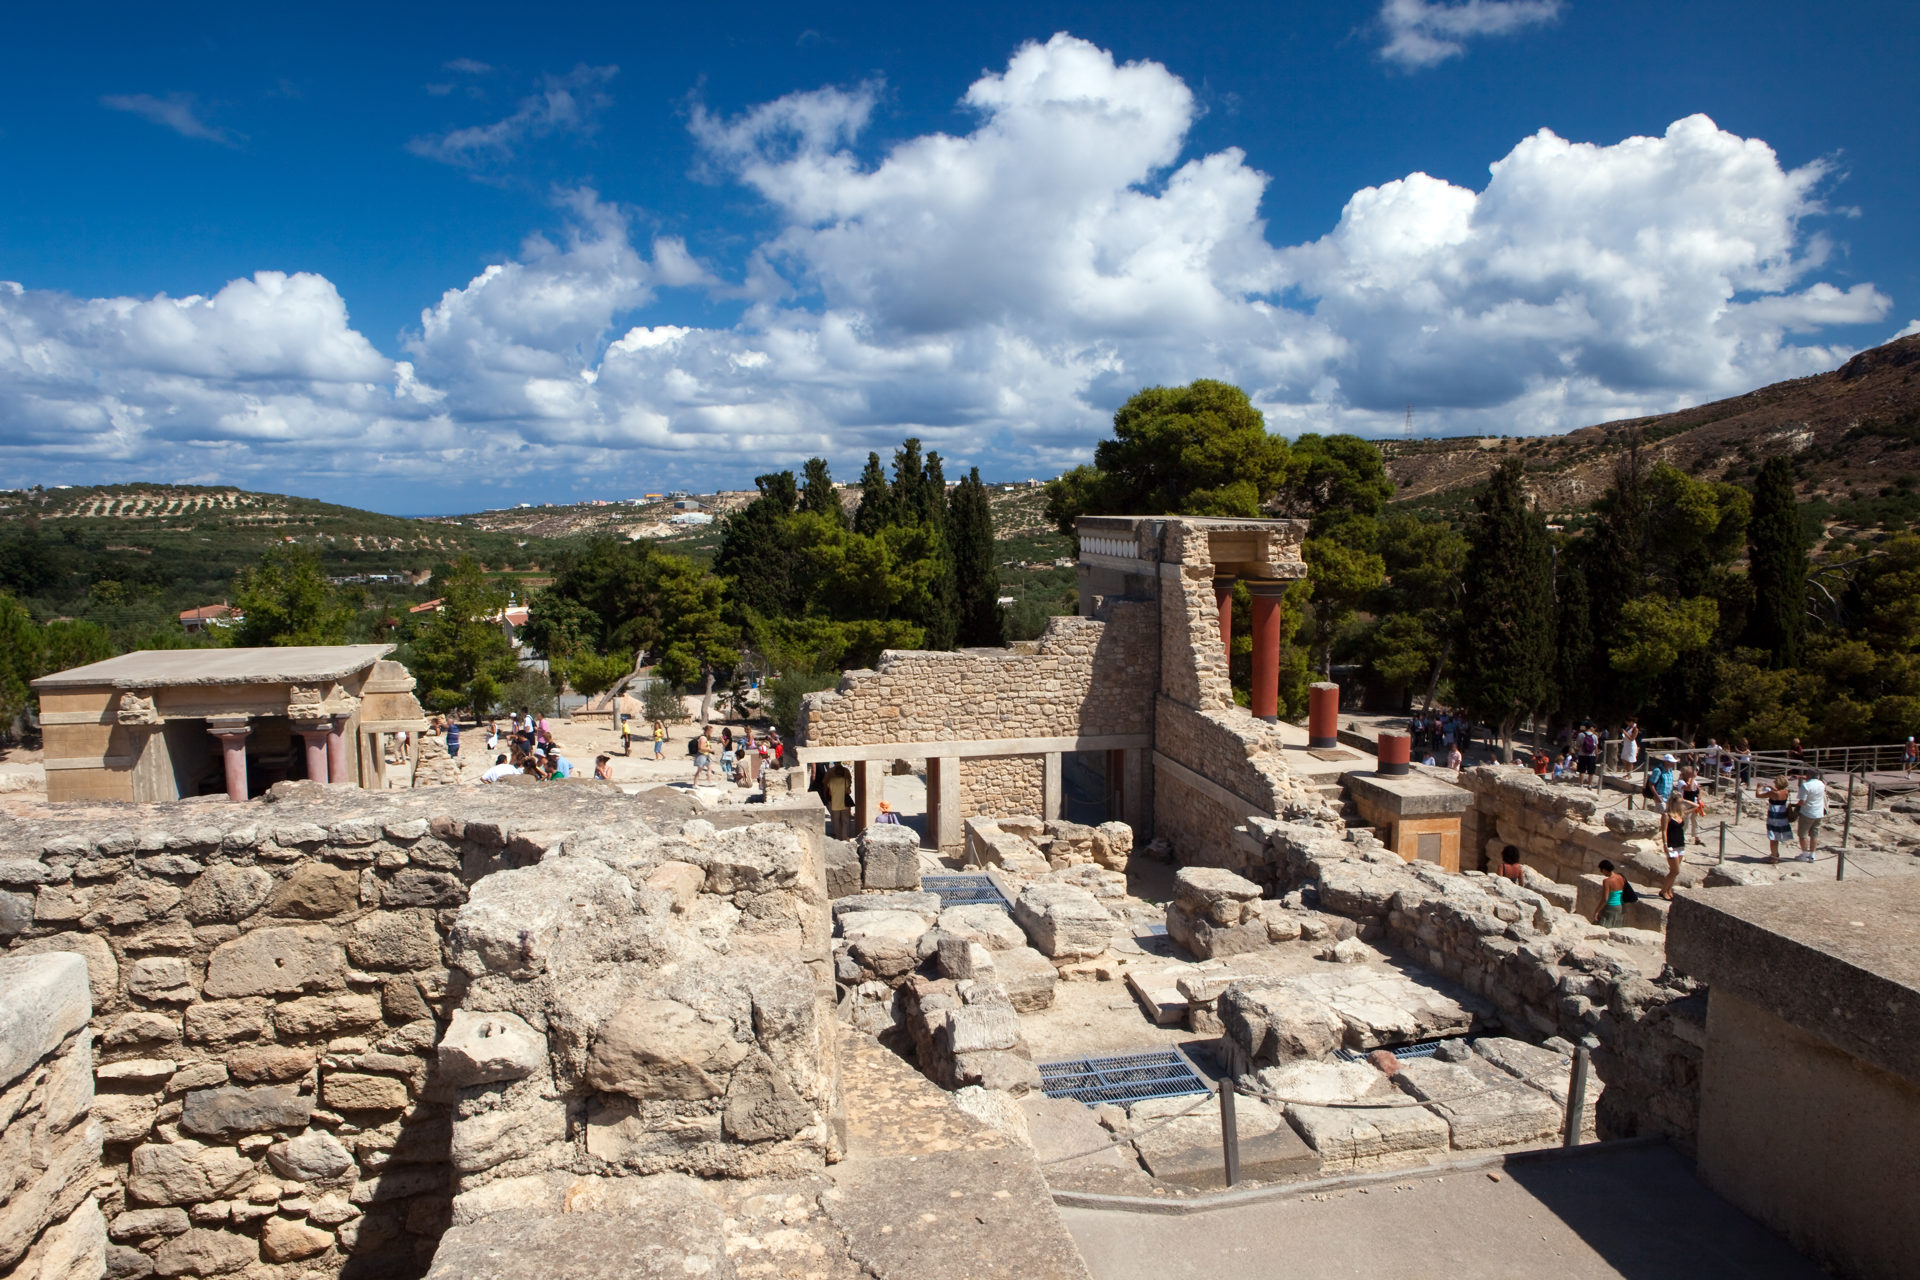 Ruins of the Knossos palace, Crete